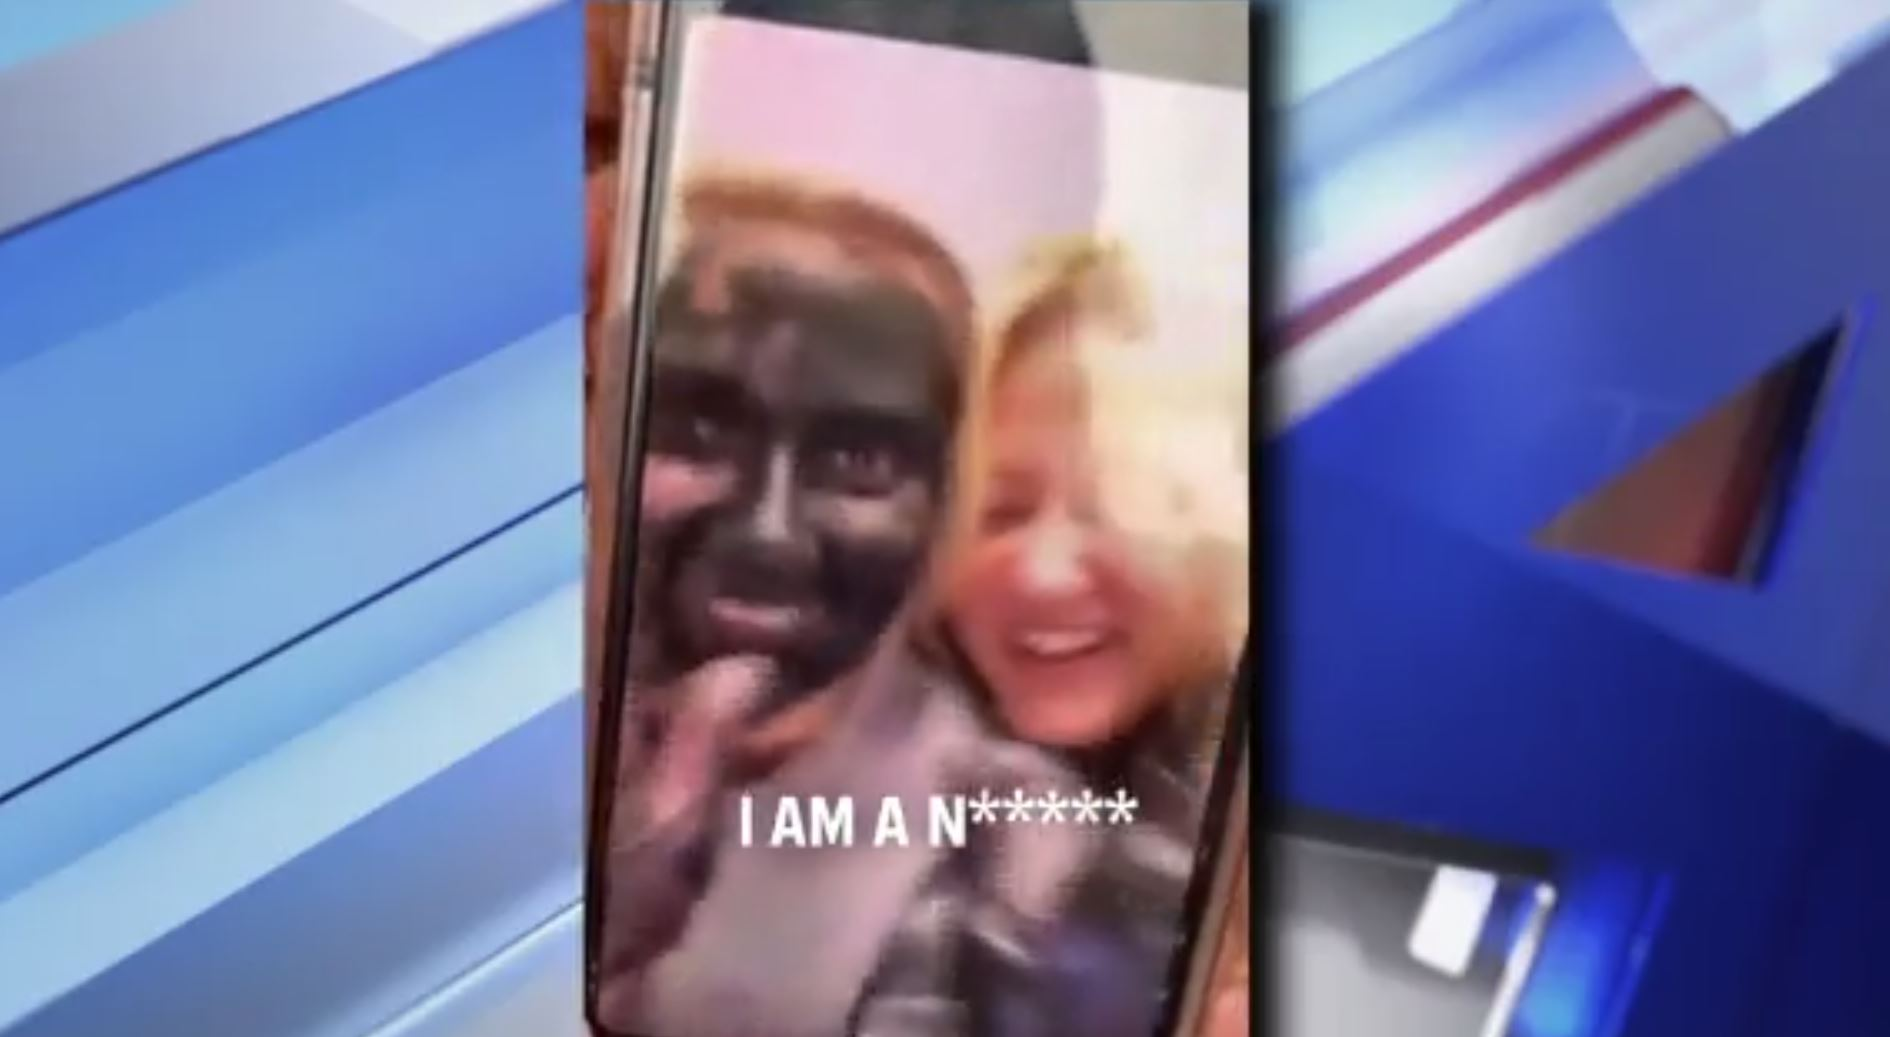 Two students leave Oklahoma University over blackface video